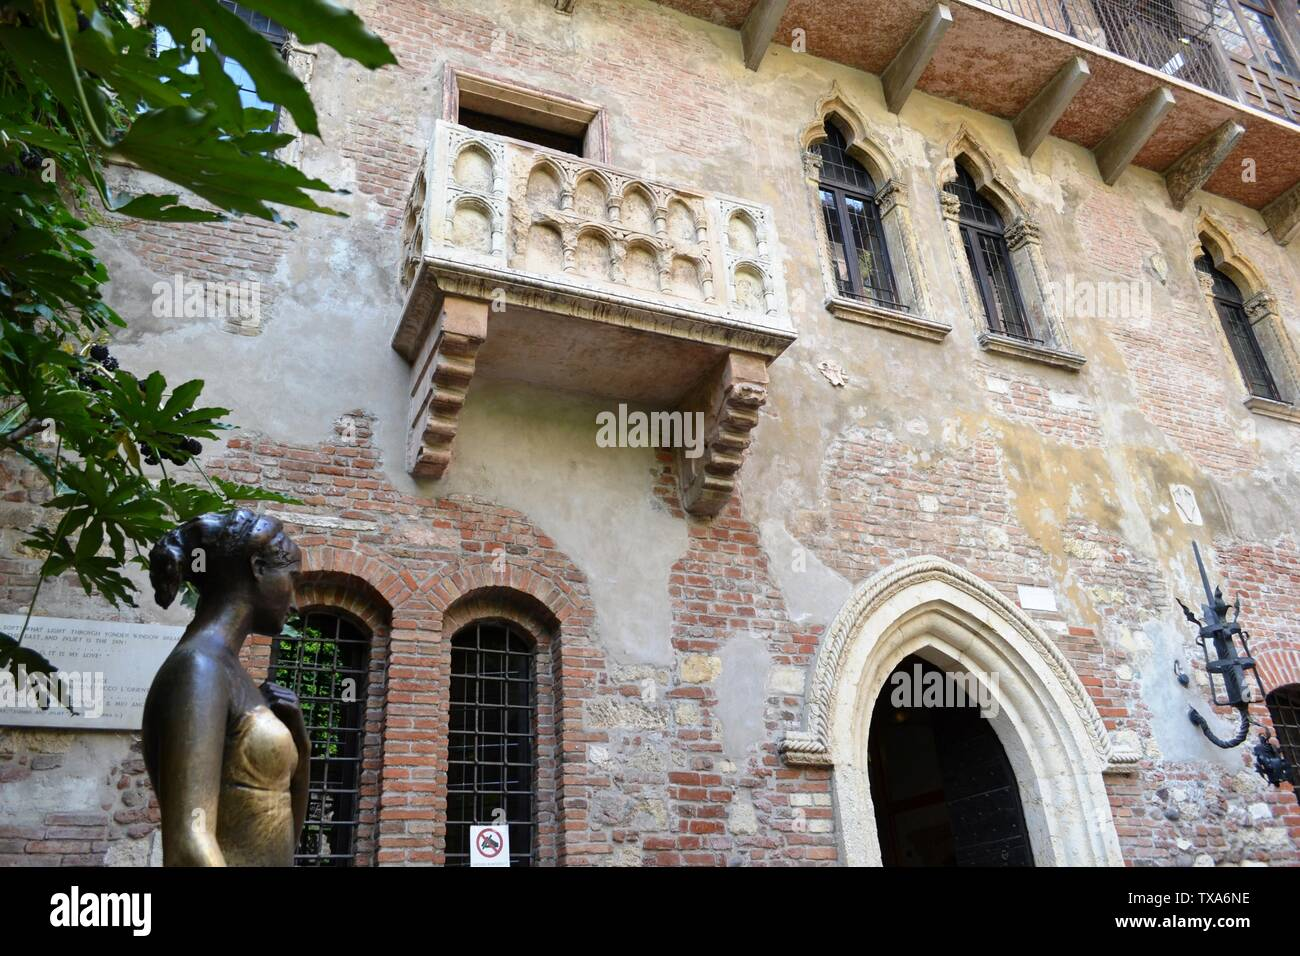 Verona/Italy - May 9, 2015: Balcony of Juliet and bronze statue of Juliet Capuleti of the house-museum  of Juliet, described by William Shakespeare. Stock Photo